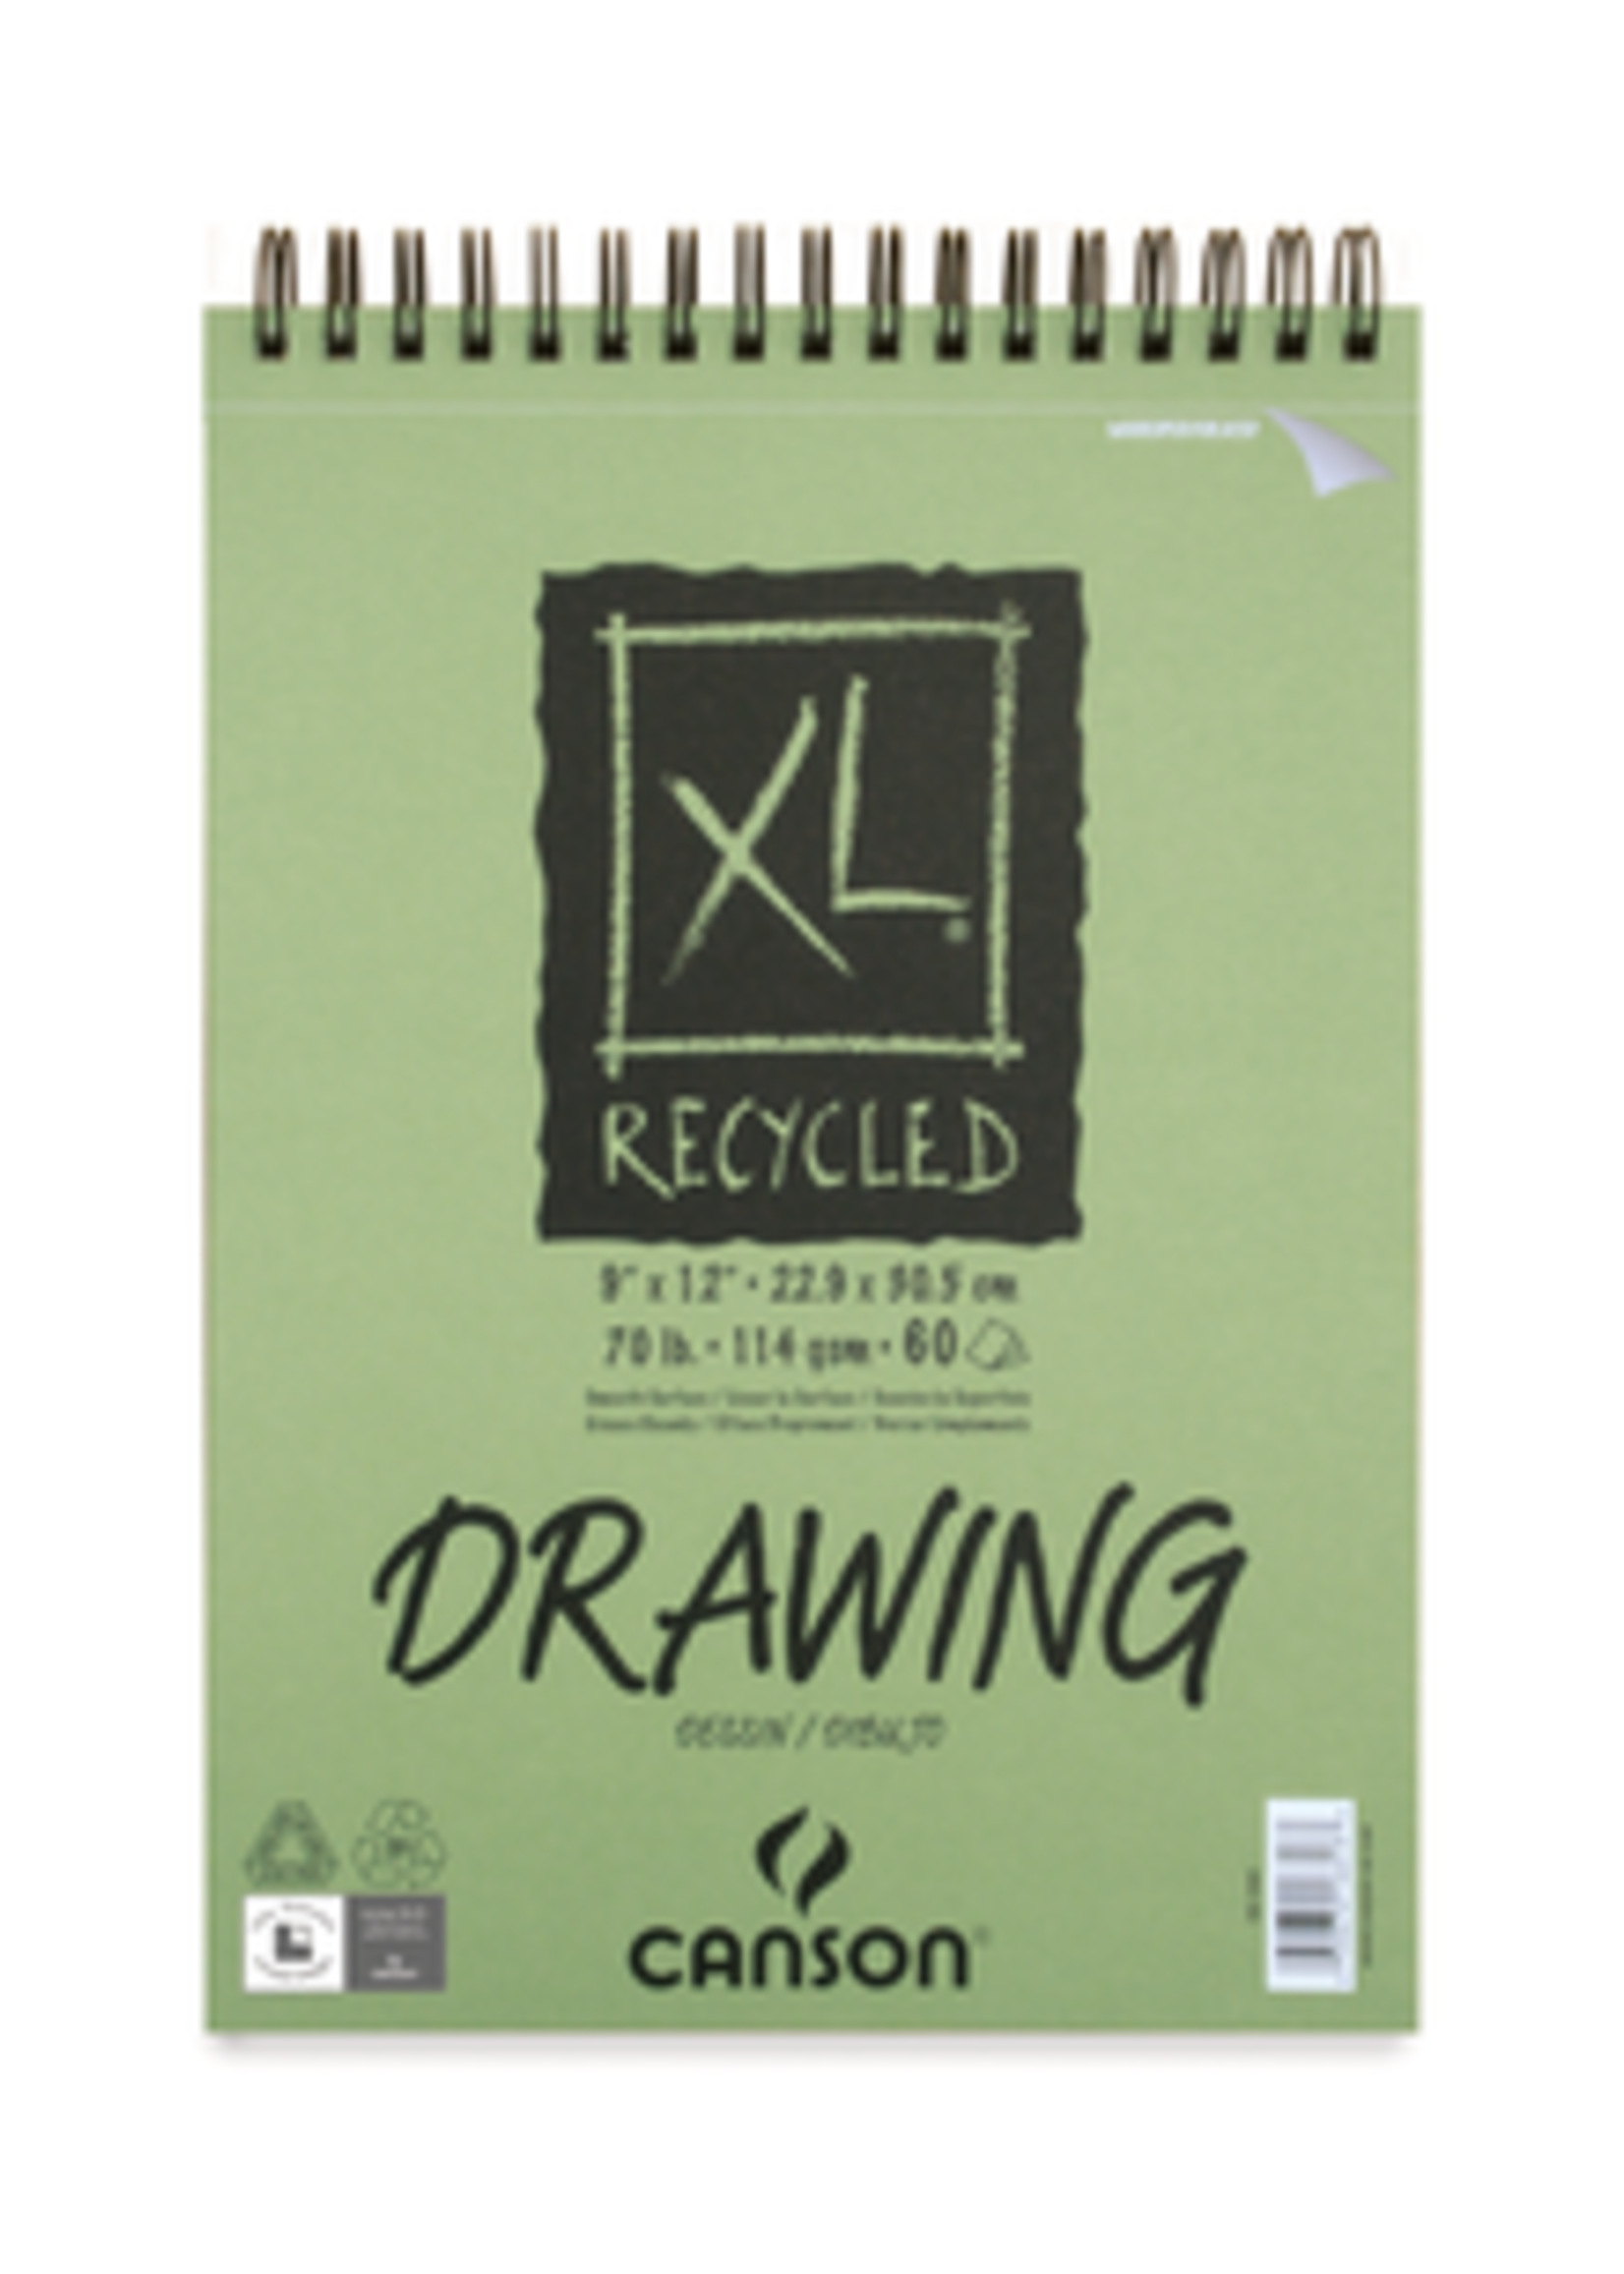 CANSON / PACON PAPERS XL DRAWING PAD